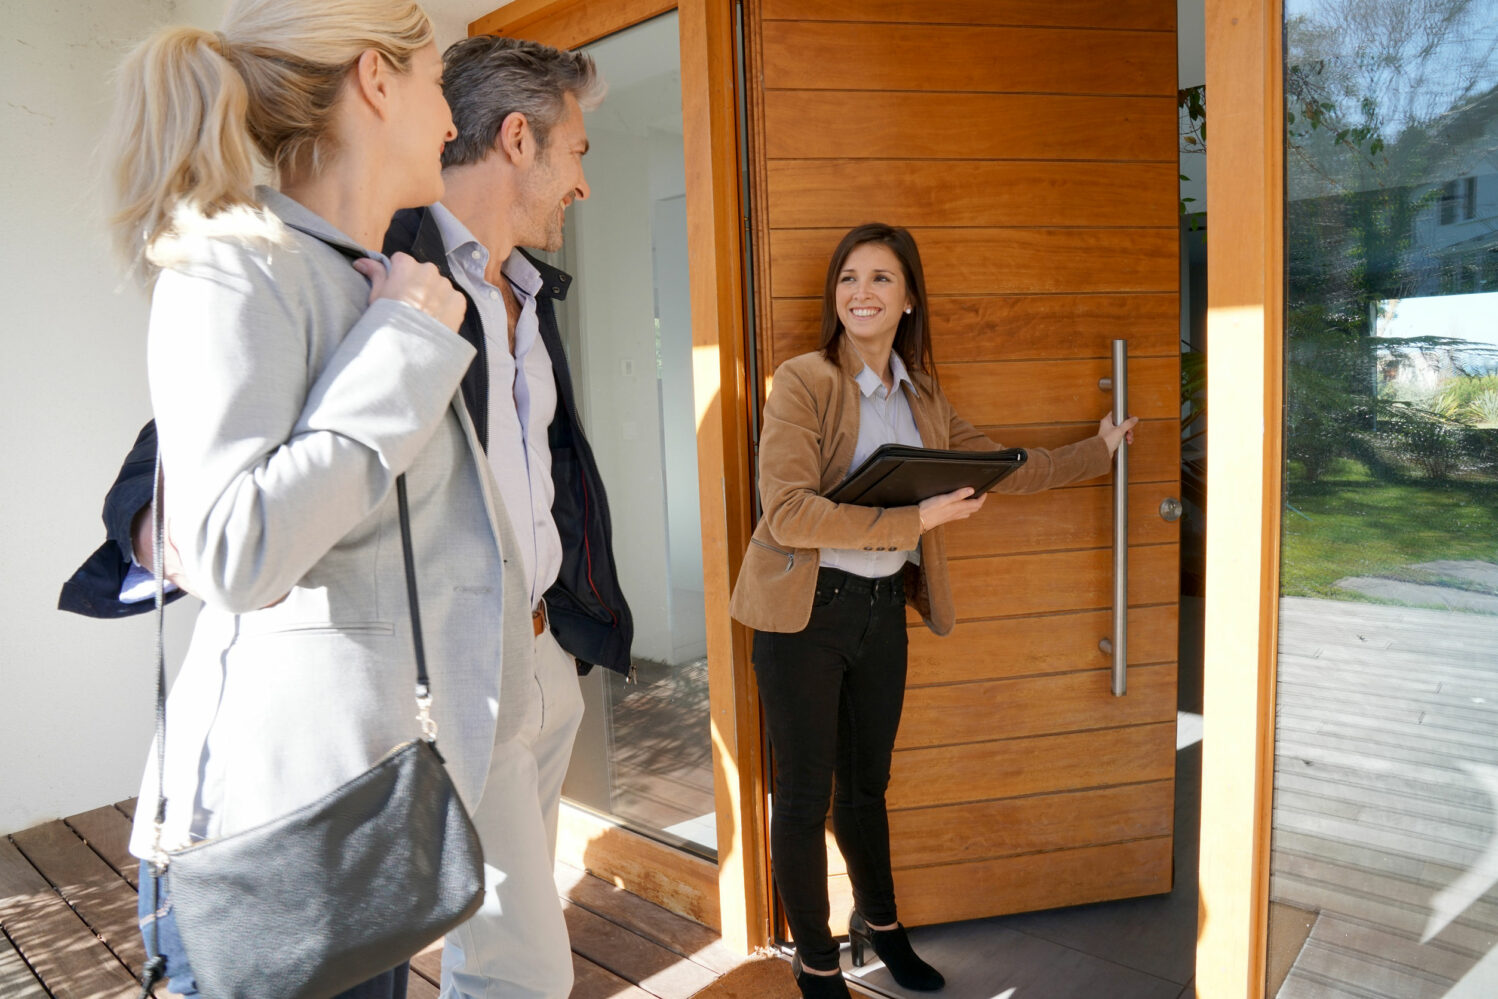 Image description: Real estate agent inviting couple to enter house for visit.